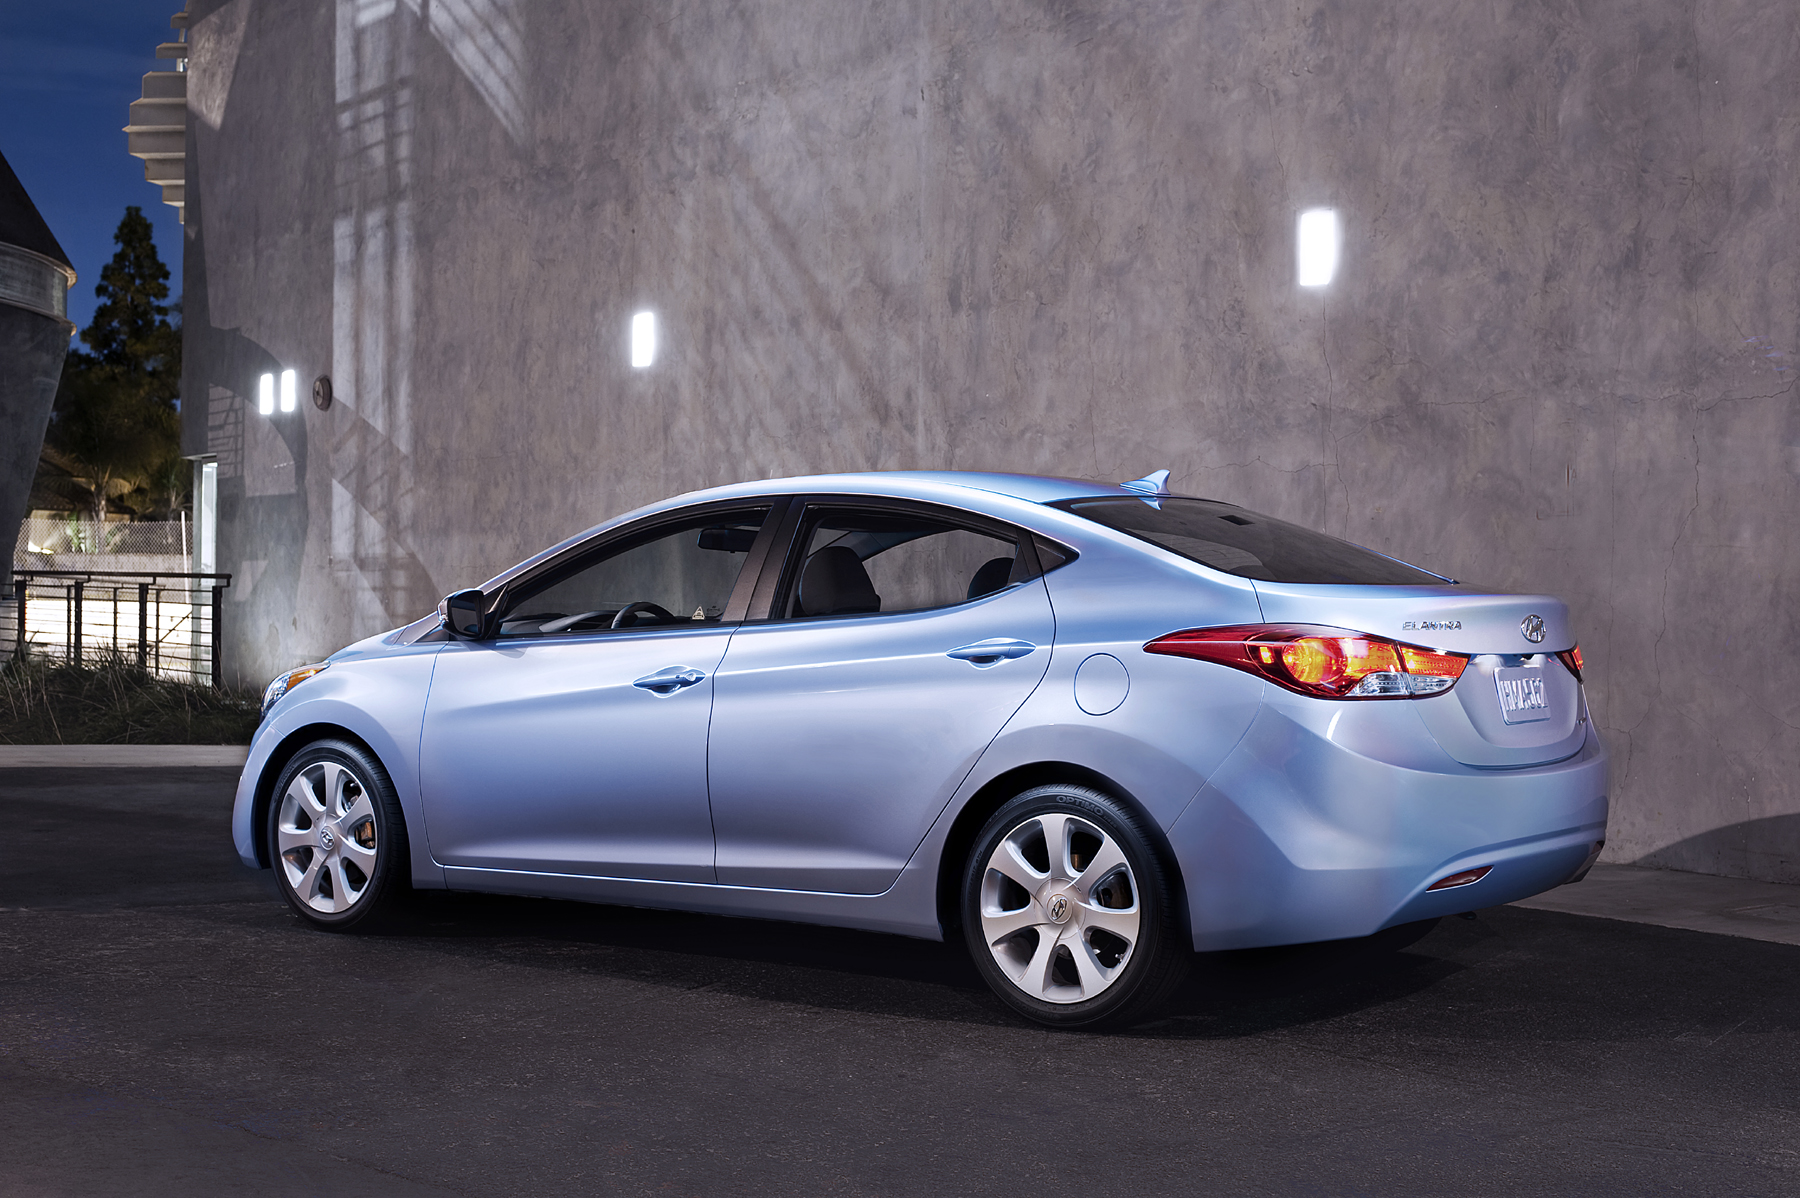 2011 Hyundai Elantra 40 MPG and Priced Below 15 Grand New on